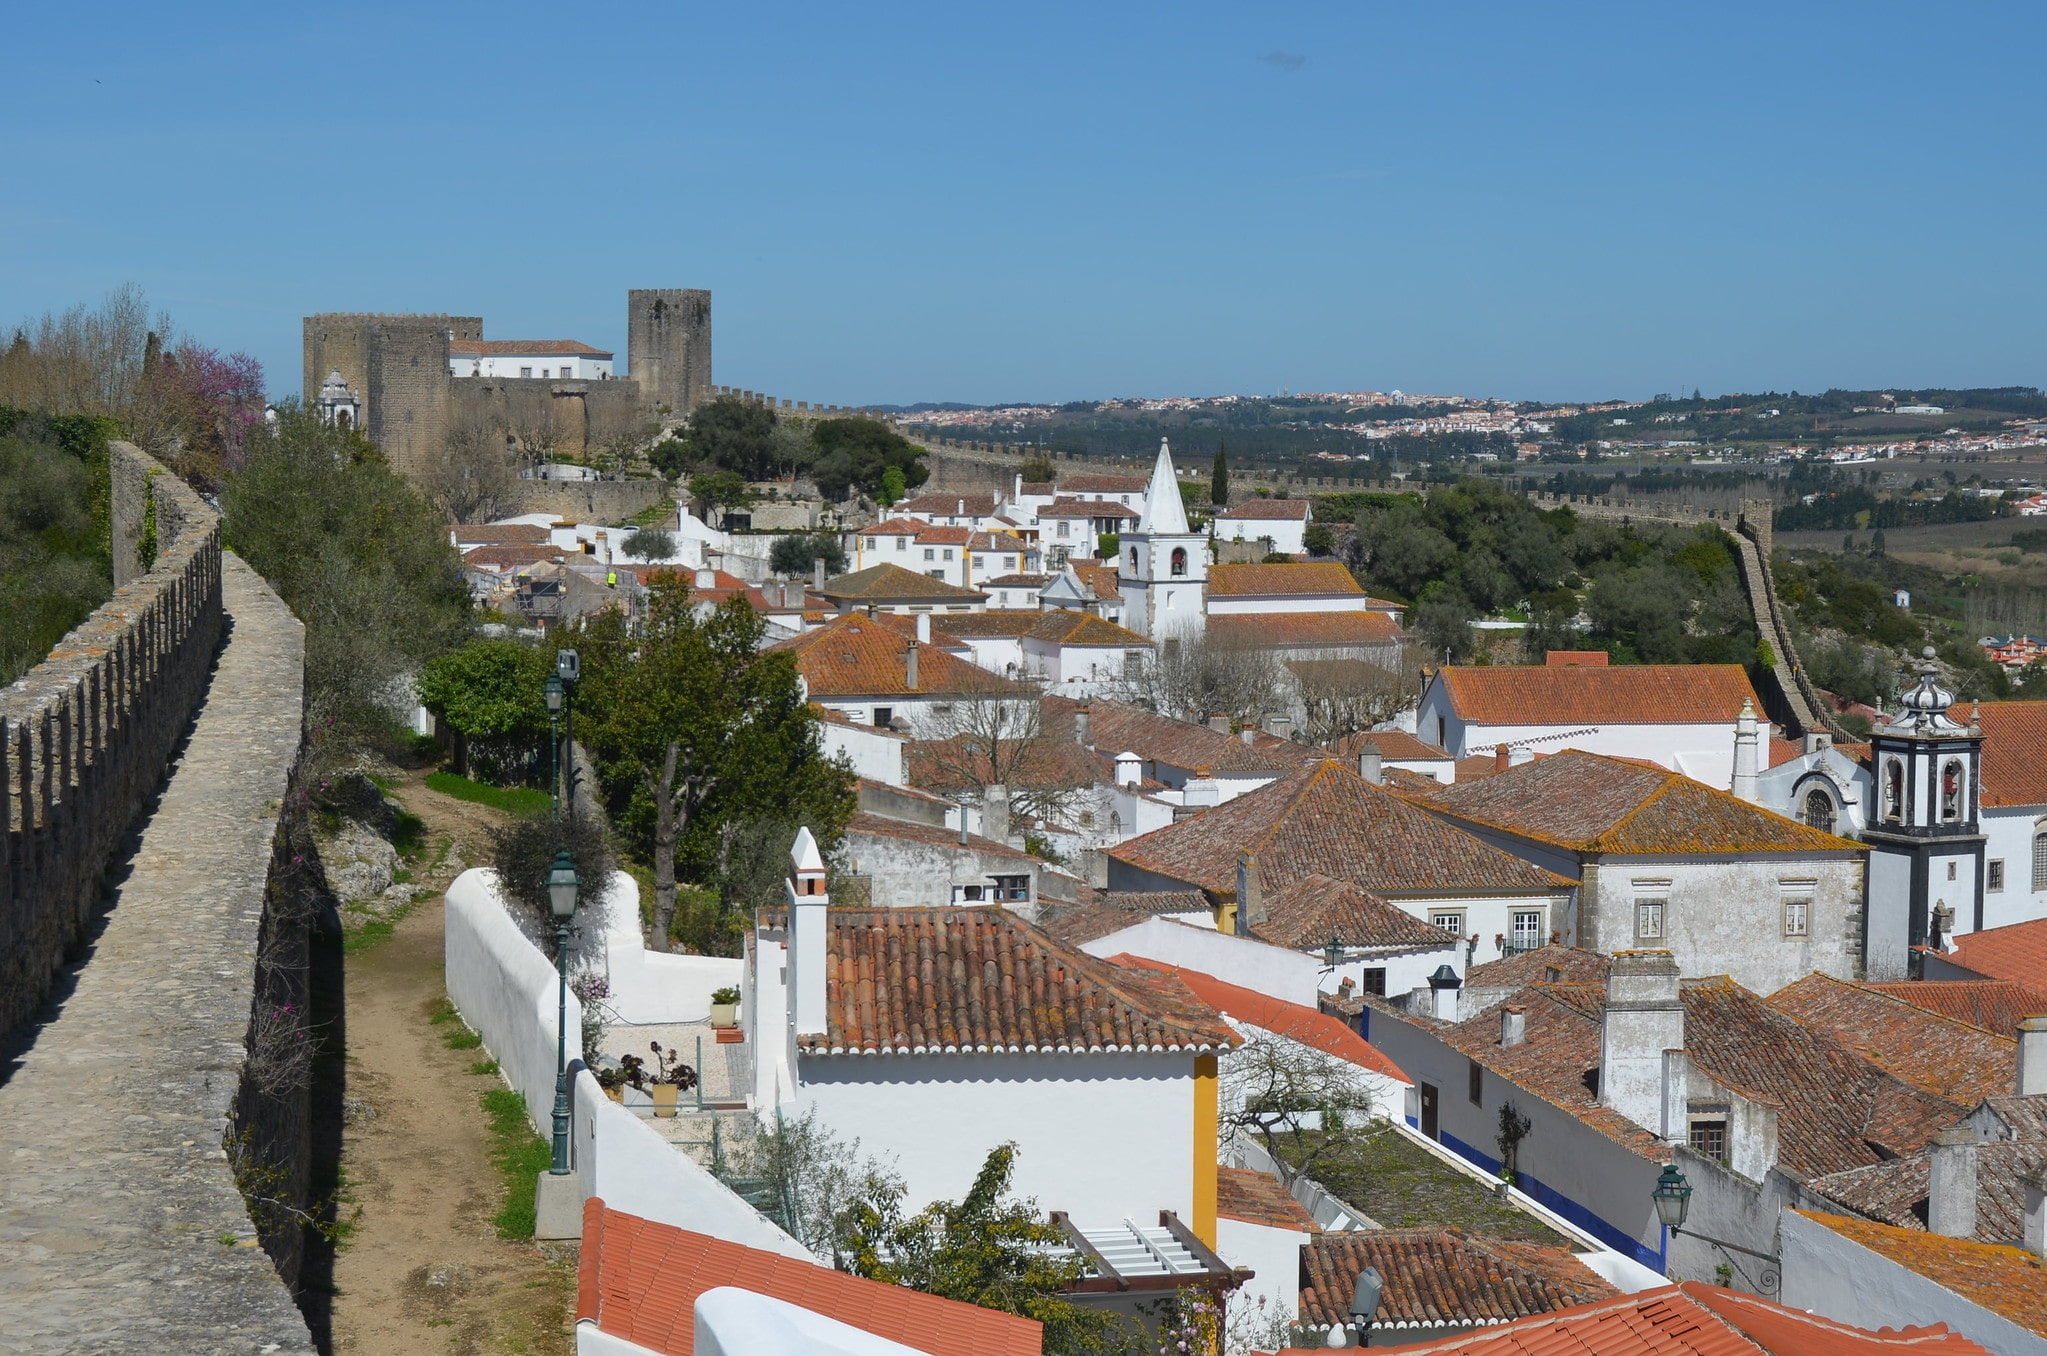 Where to stay in Portugal to explore medieval walls? Óbidos